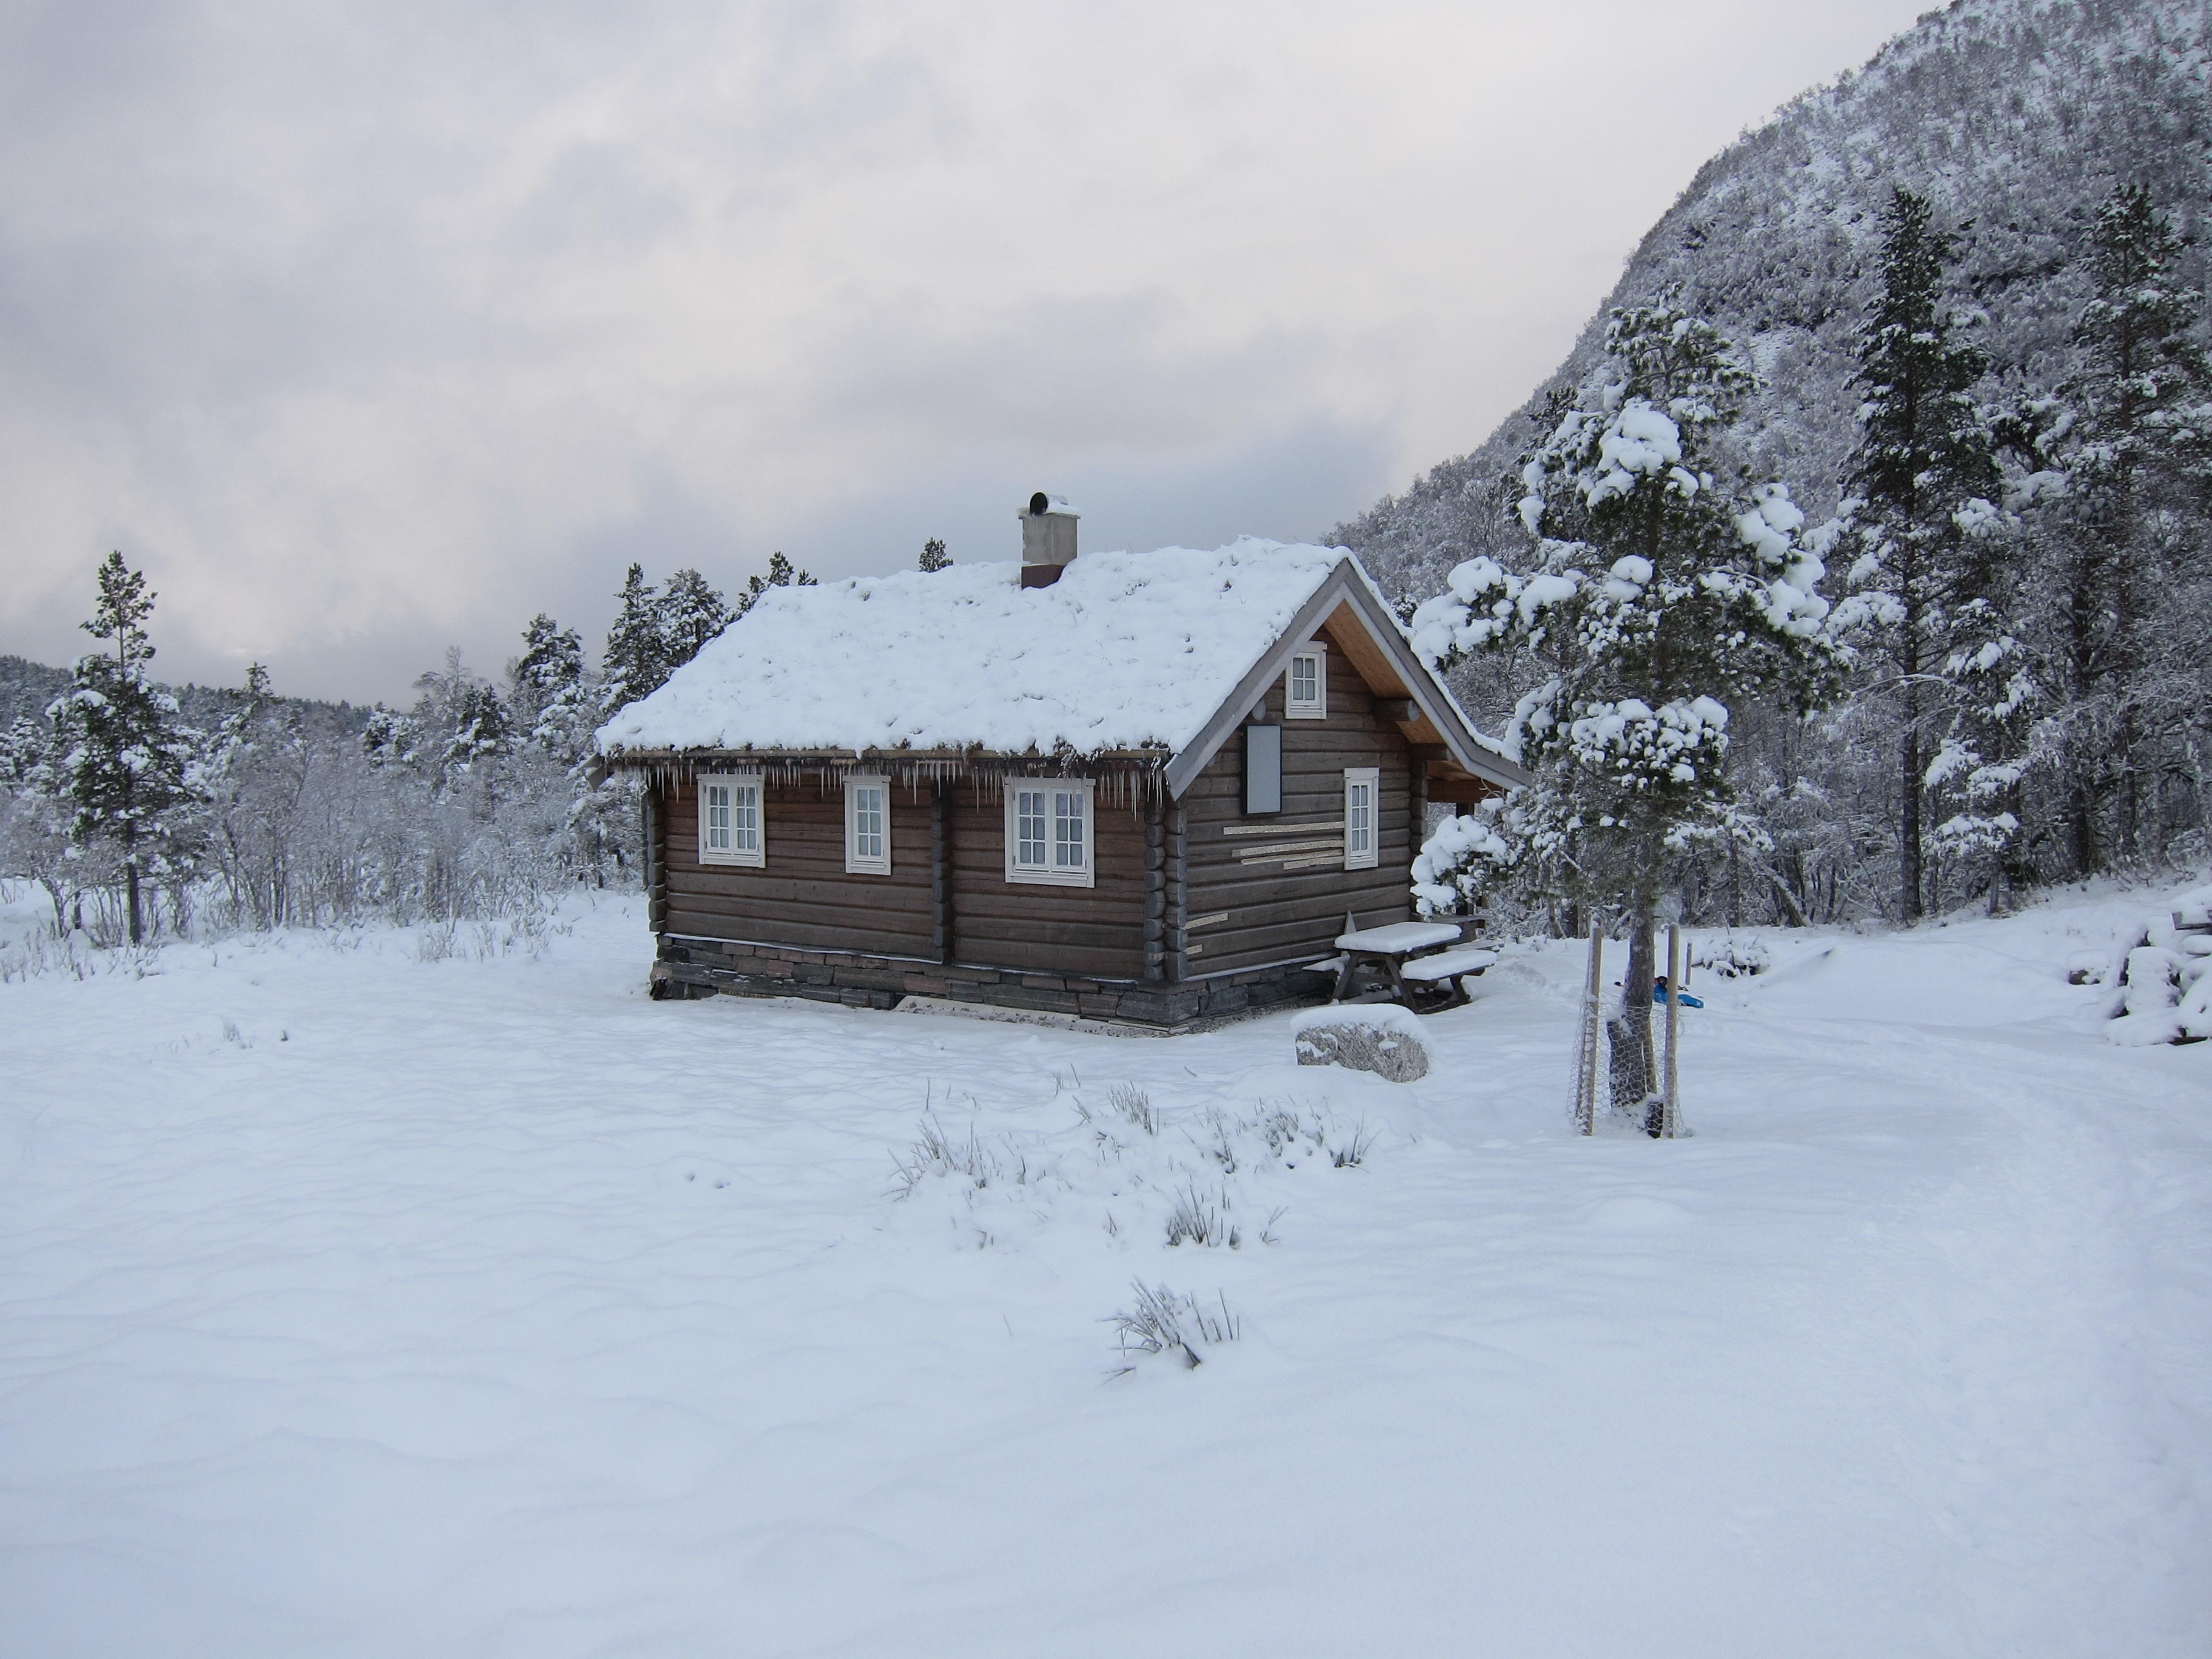 file winter view of typical norwegian hytte cabin coverd. Black Bedroom Furniture Sets. Home Design Ideas